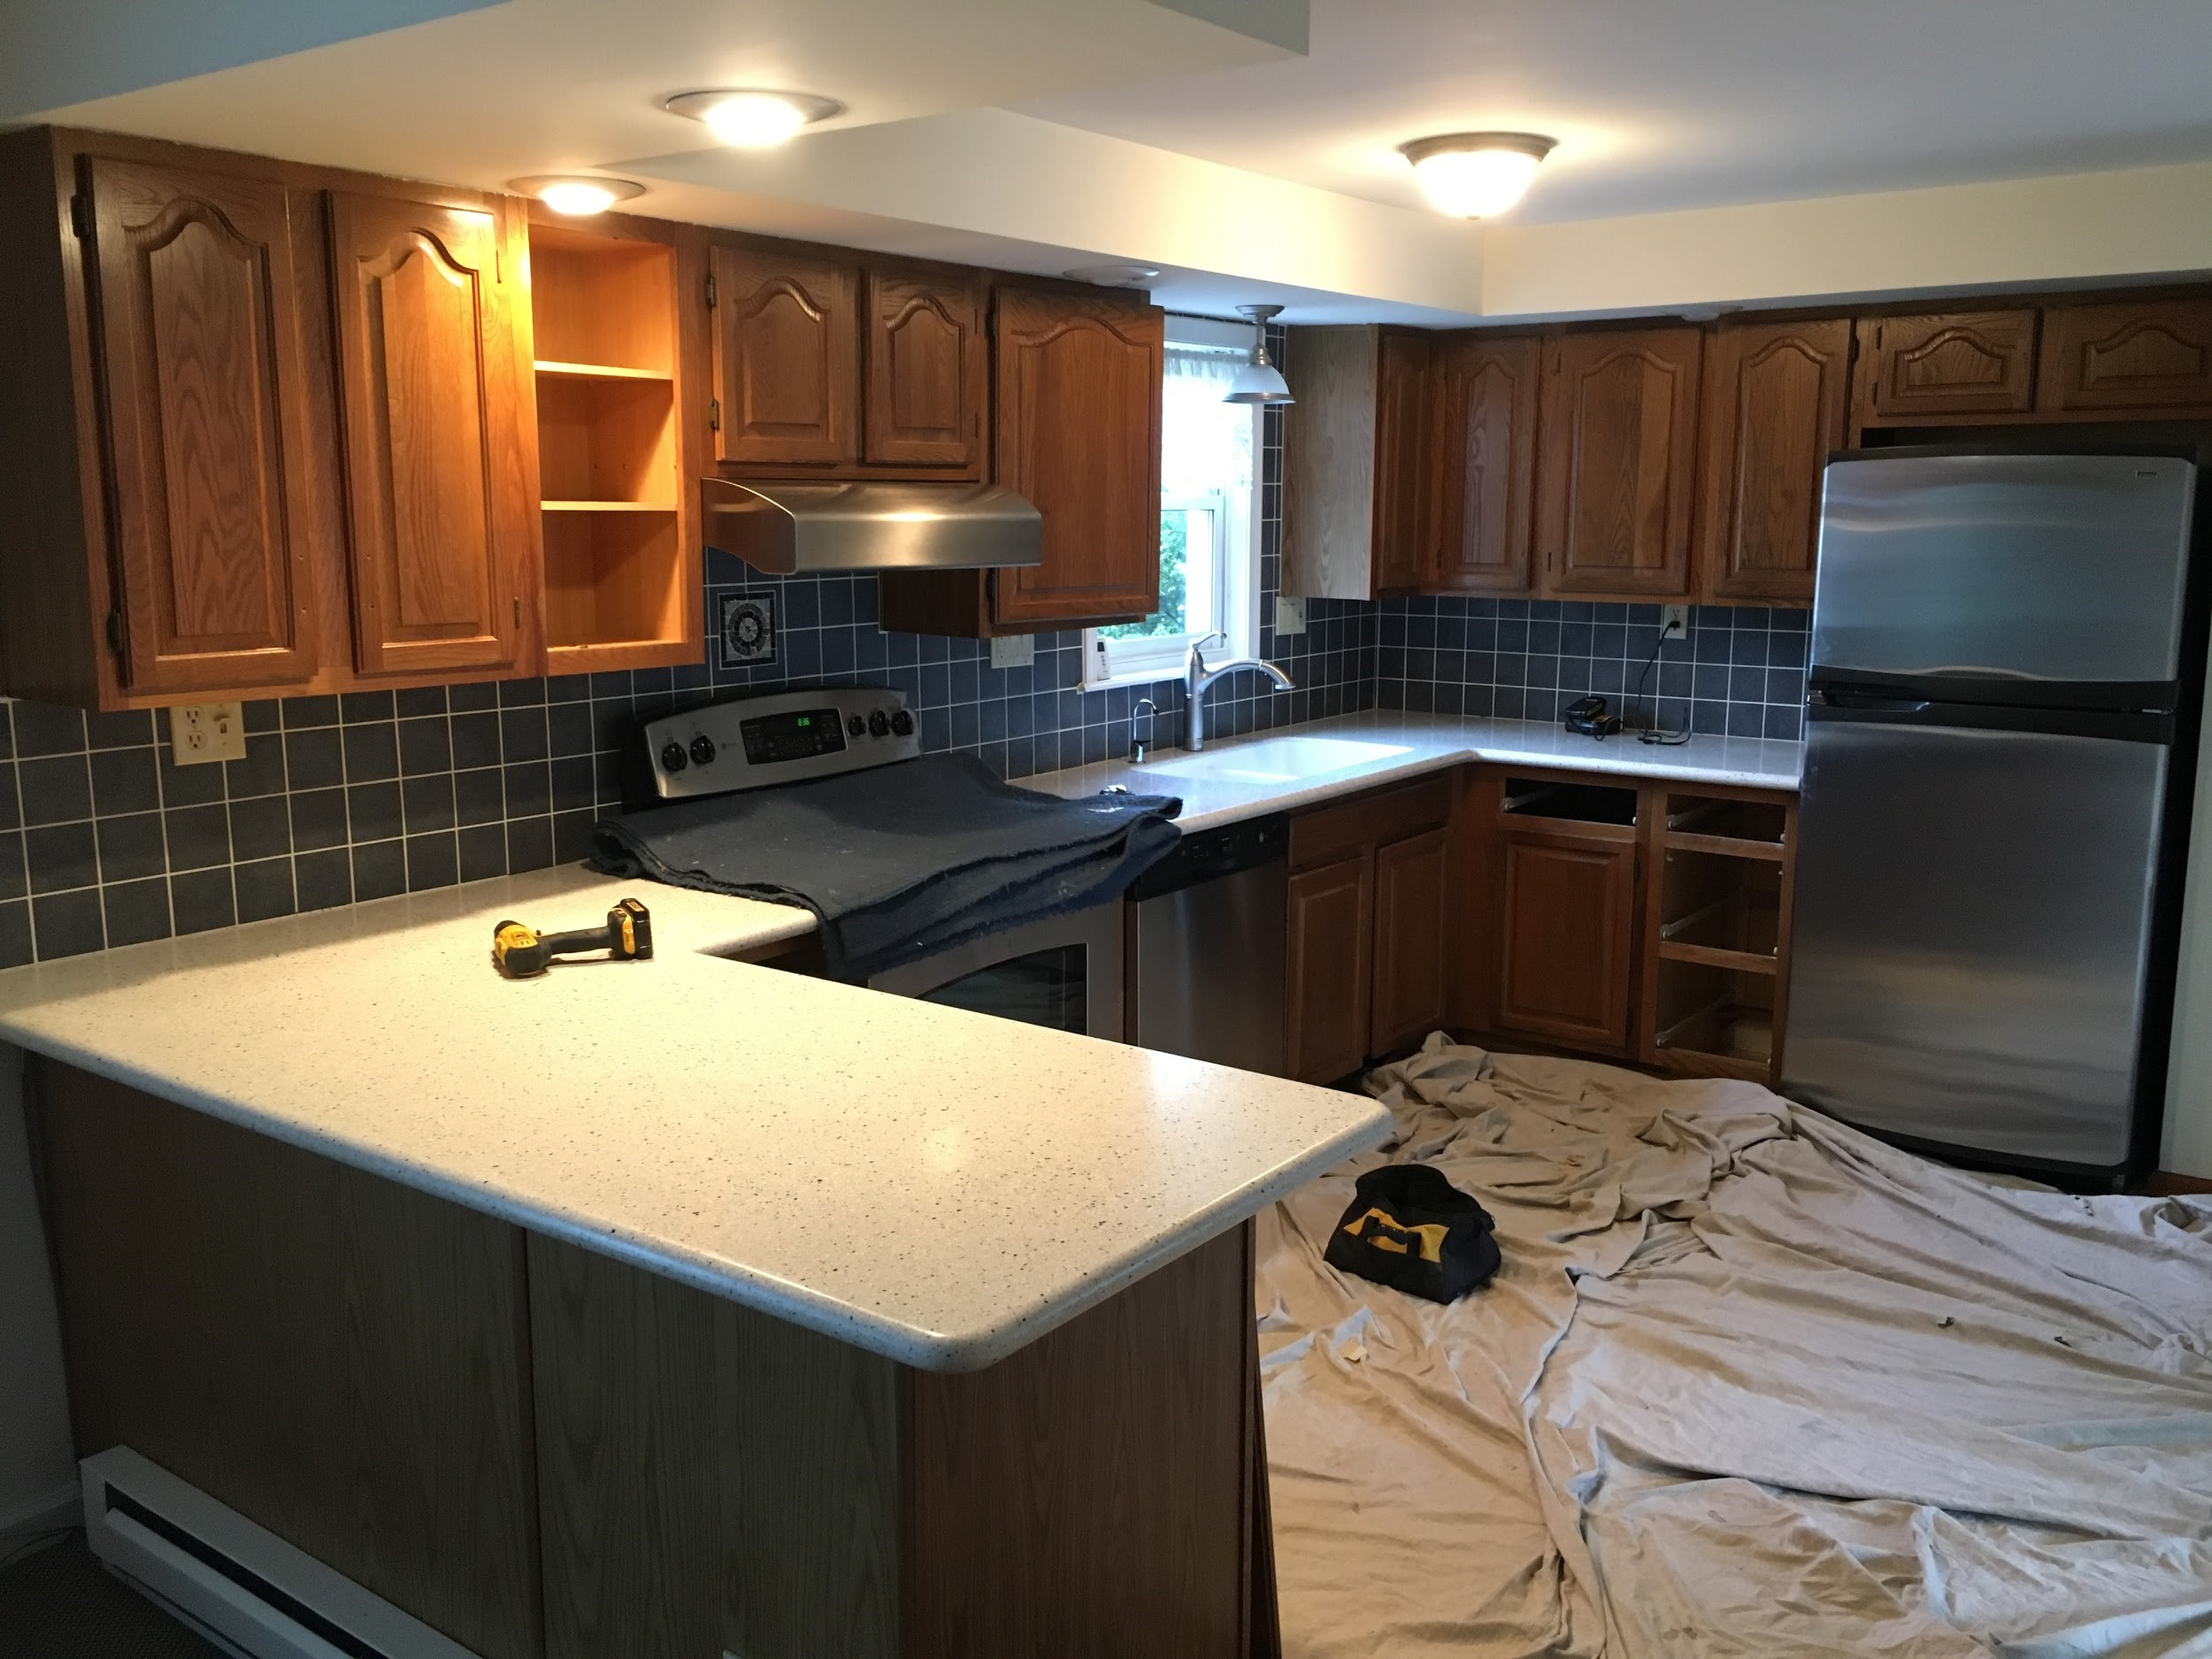 post reface kitchen of cabinet cost cabinets best luxury refacing